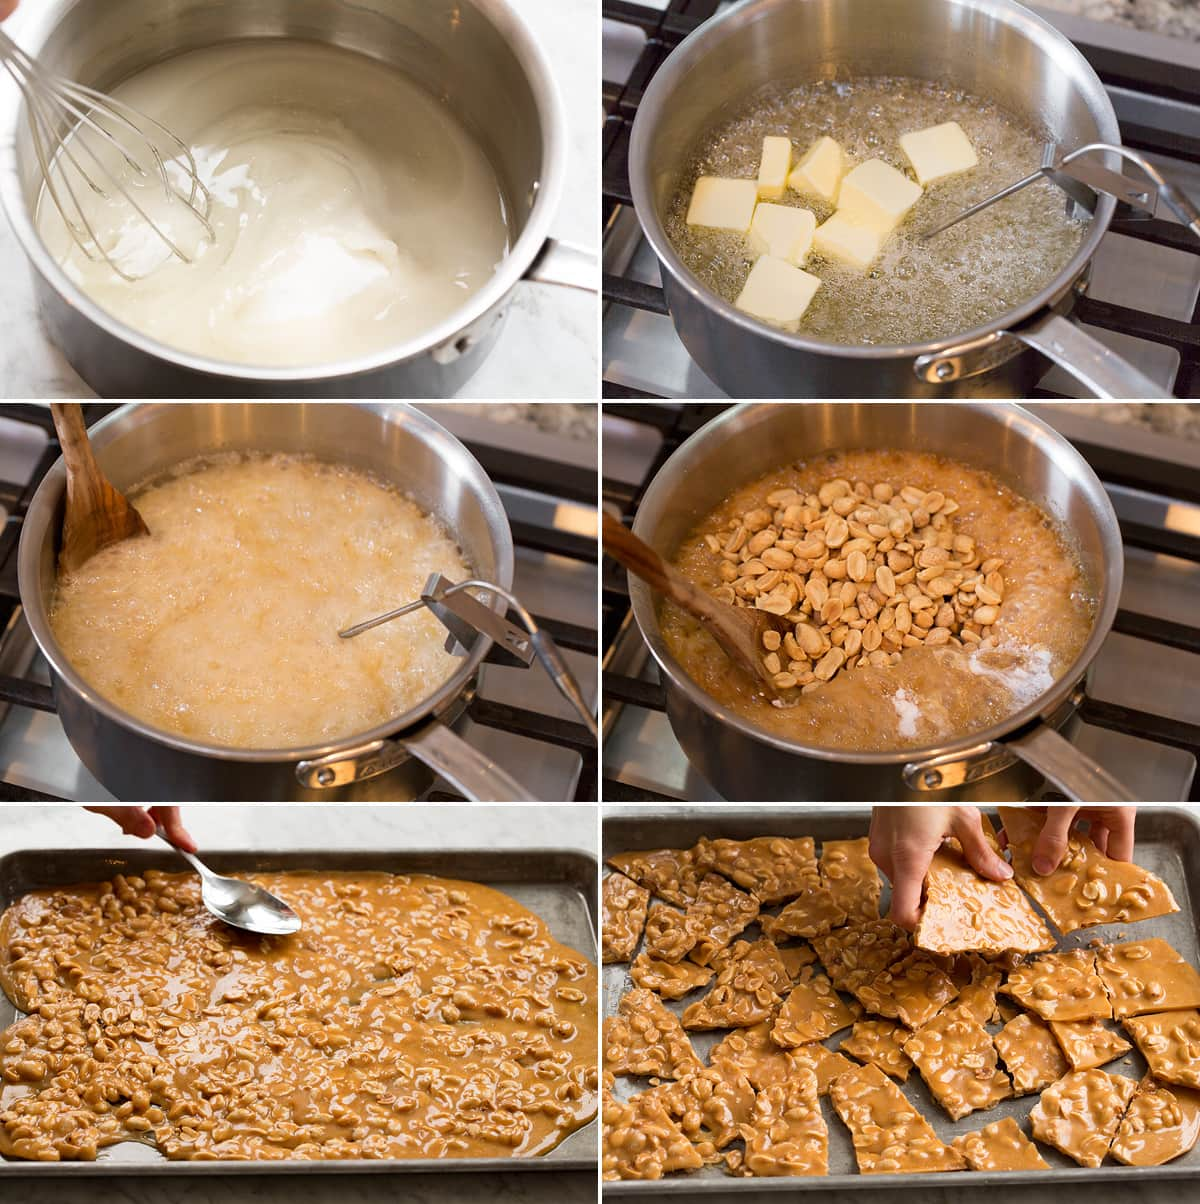 Collage of six images showing how to make peanut brittle in a saucepan on the stovetop. Also shows spreading peanut brittle mixture onto baking sheet then breaking it.